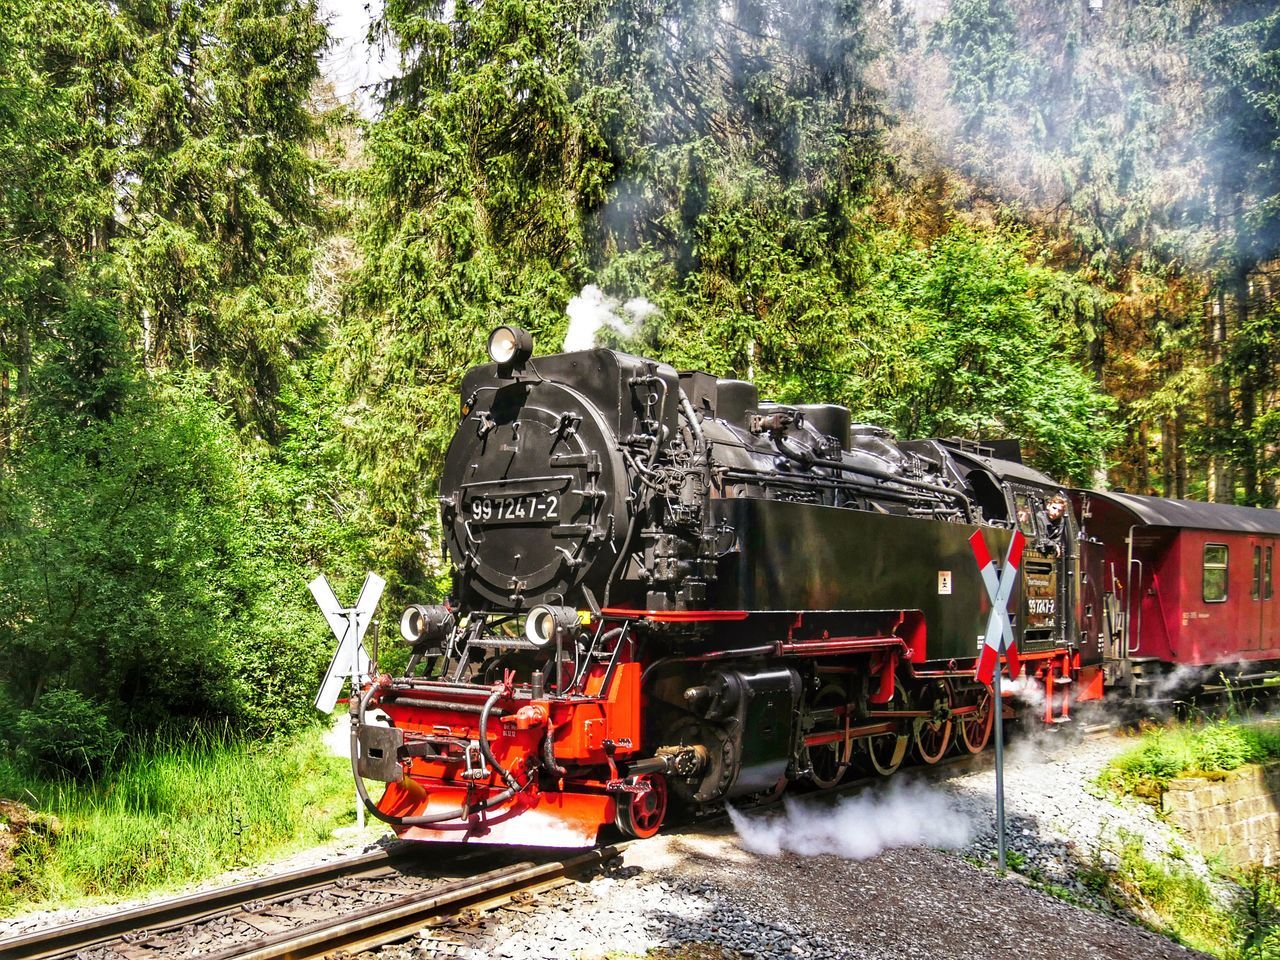 Steam Train Harz Brockenbahn Brocken Railway Railway Track Railroad Track Narrow Gauge Railroad Railway Crossing Steam Locomotive Global Photographer Works Exhibition Global Photographers Alliance Showcase July